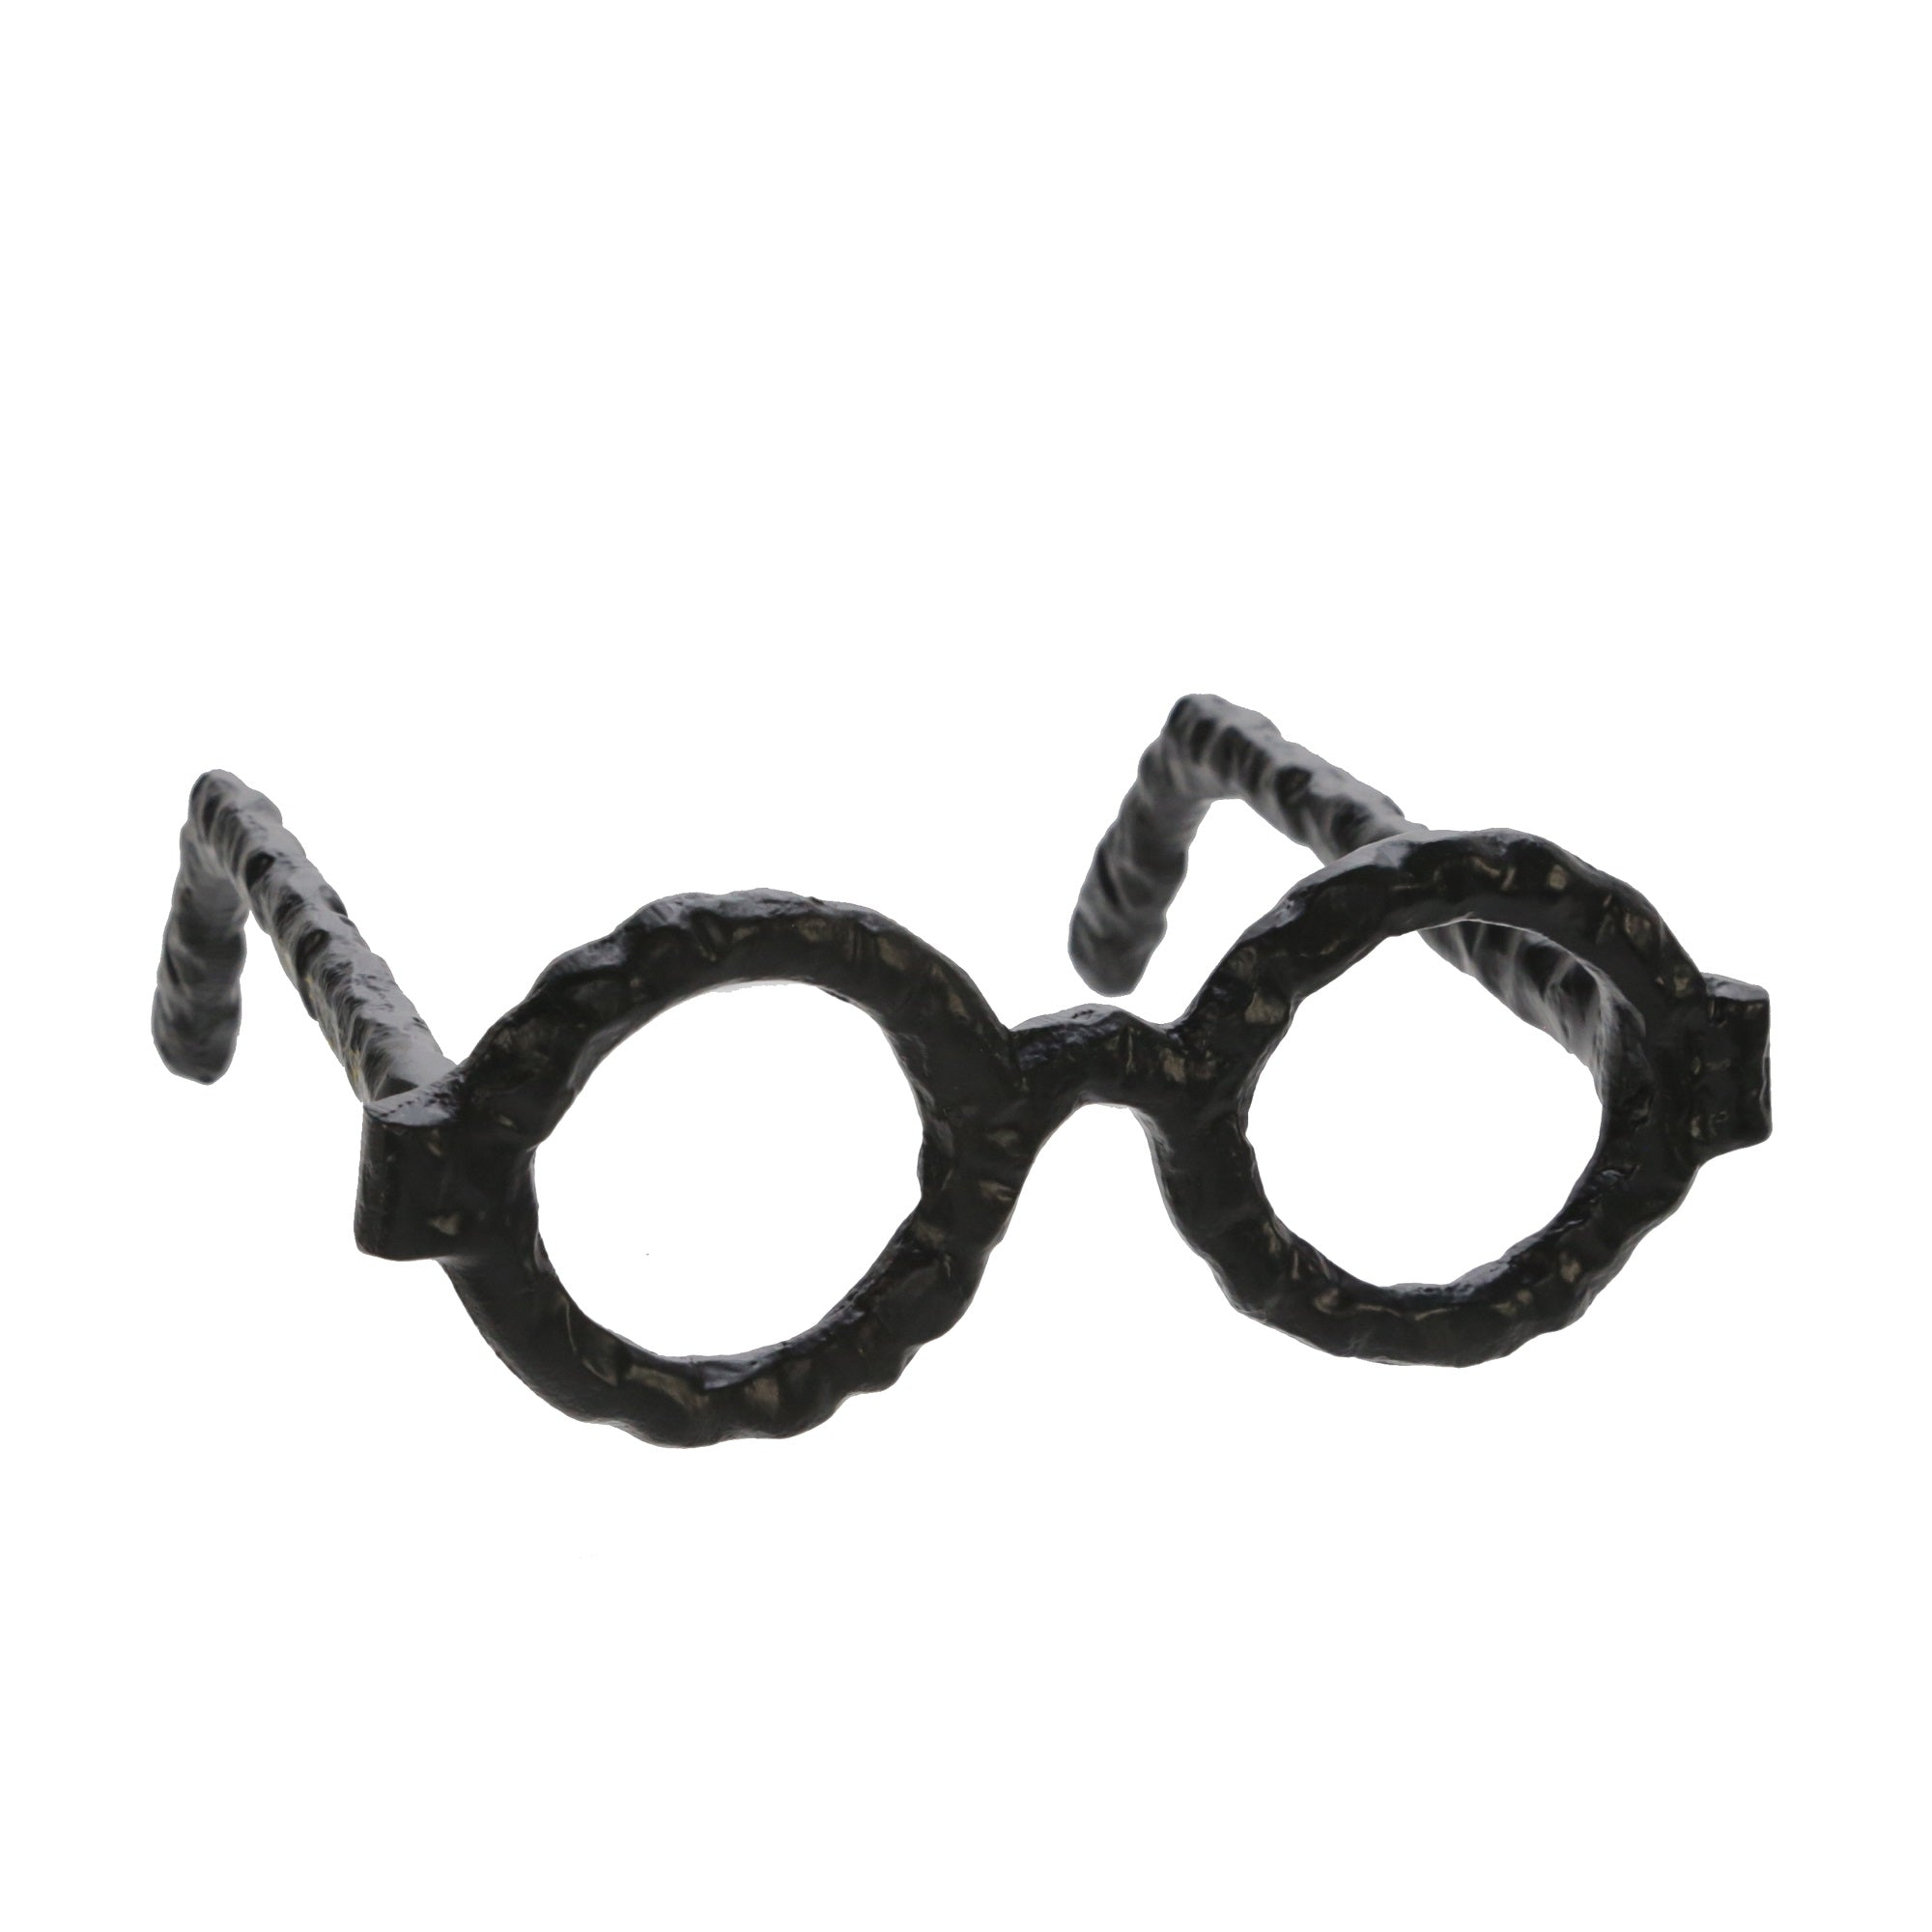 ALUMINUM GLASSES SCULPTURE, BLACK